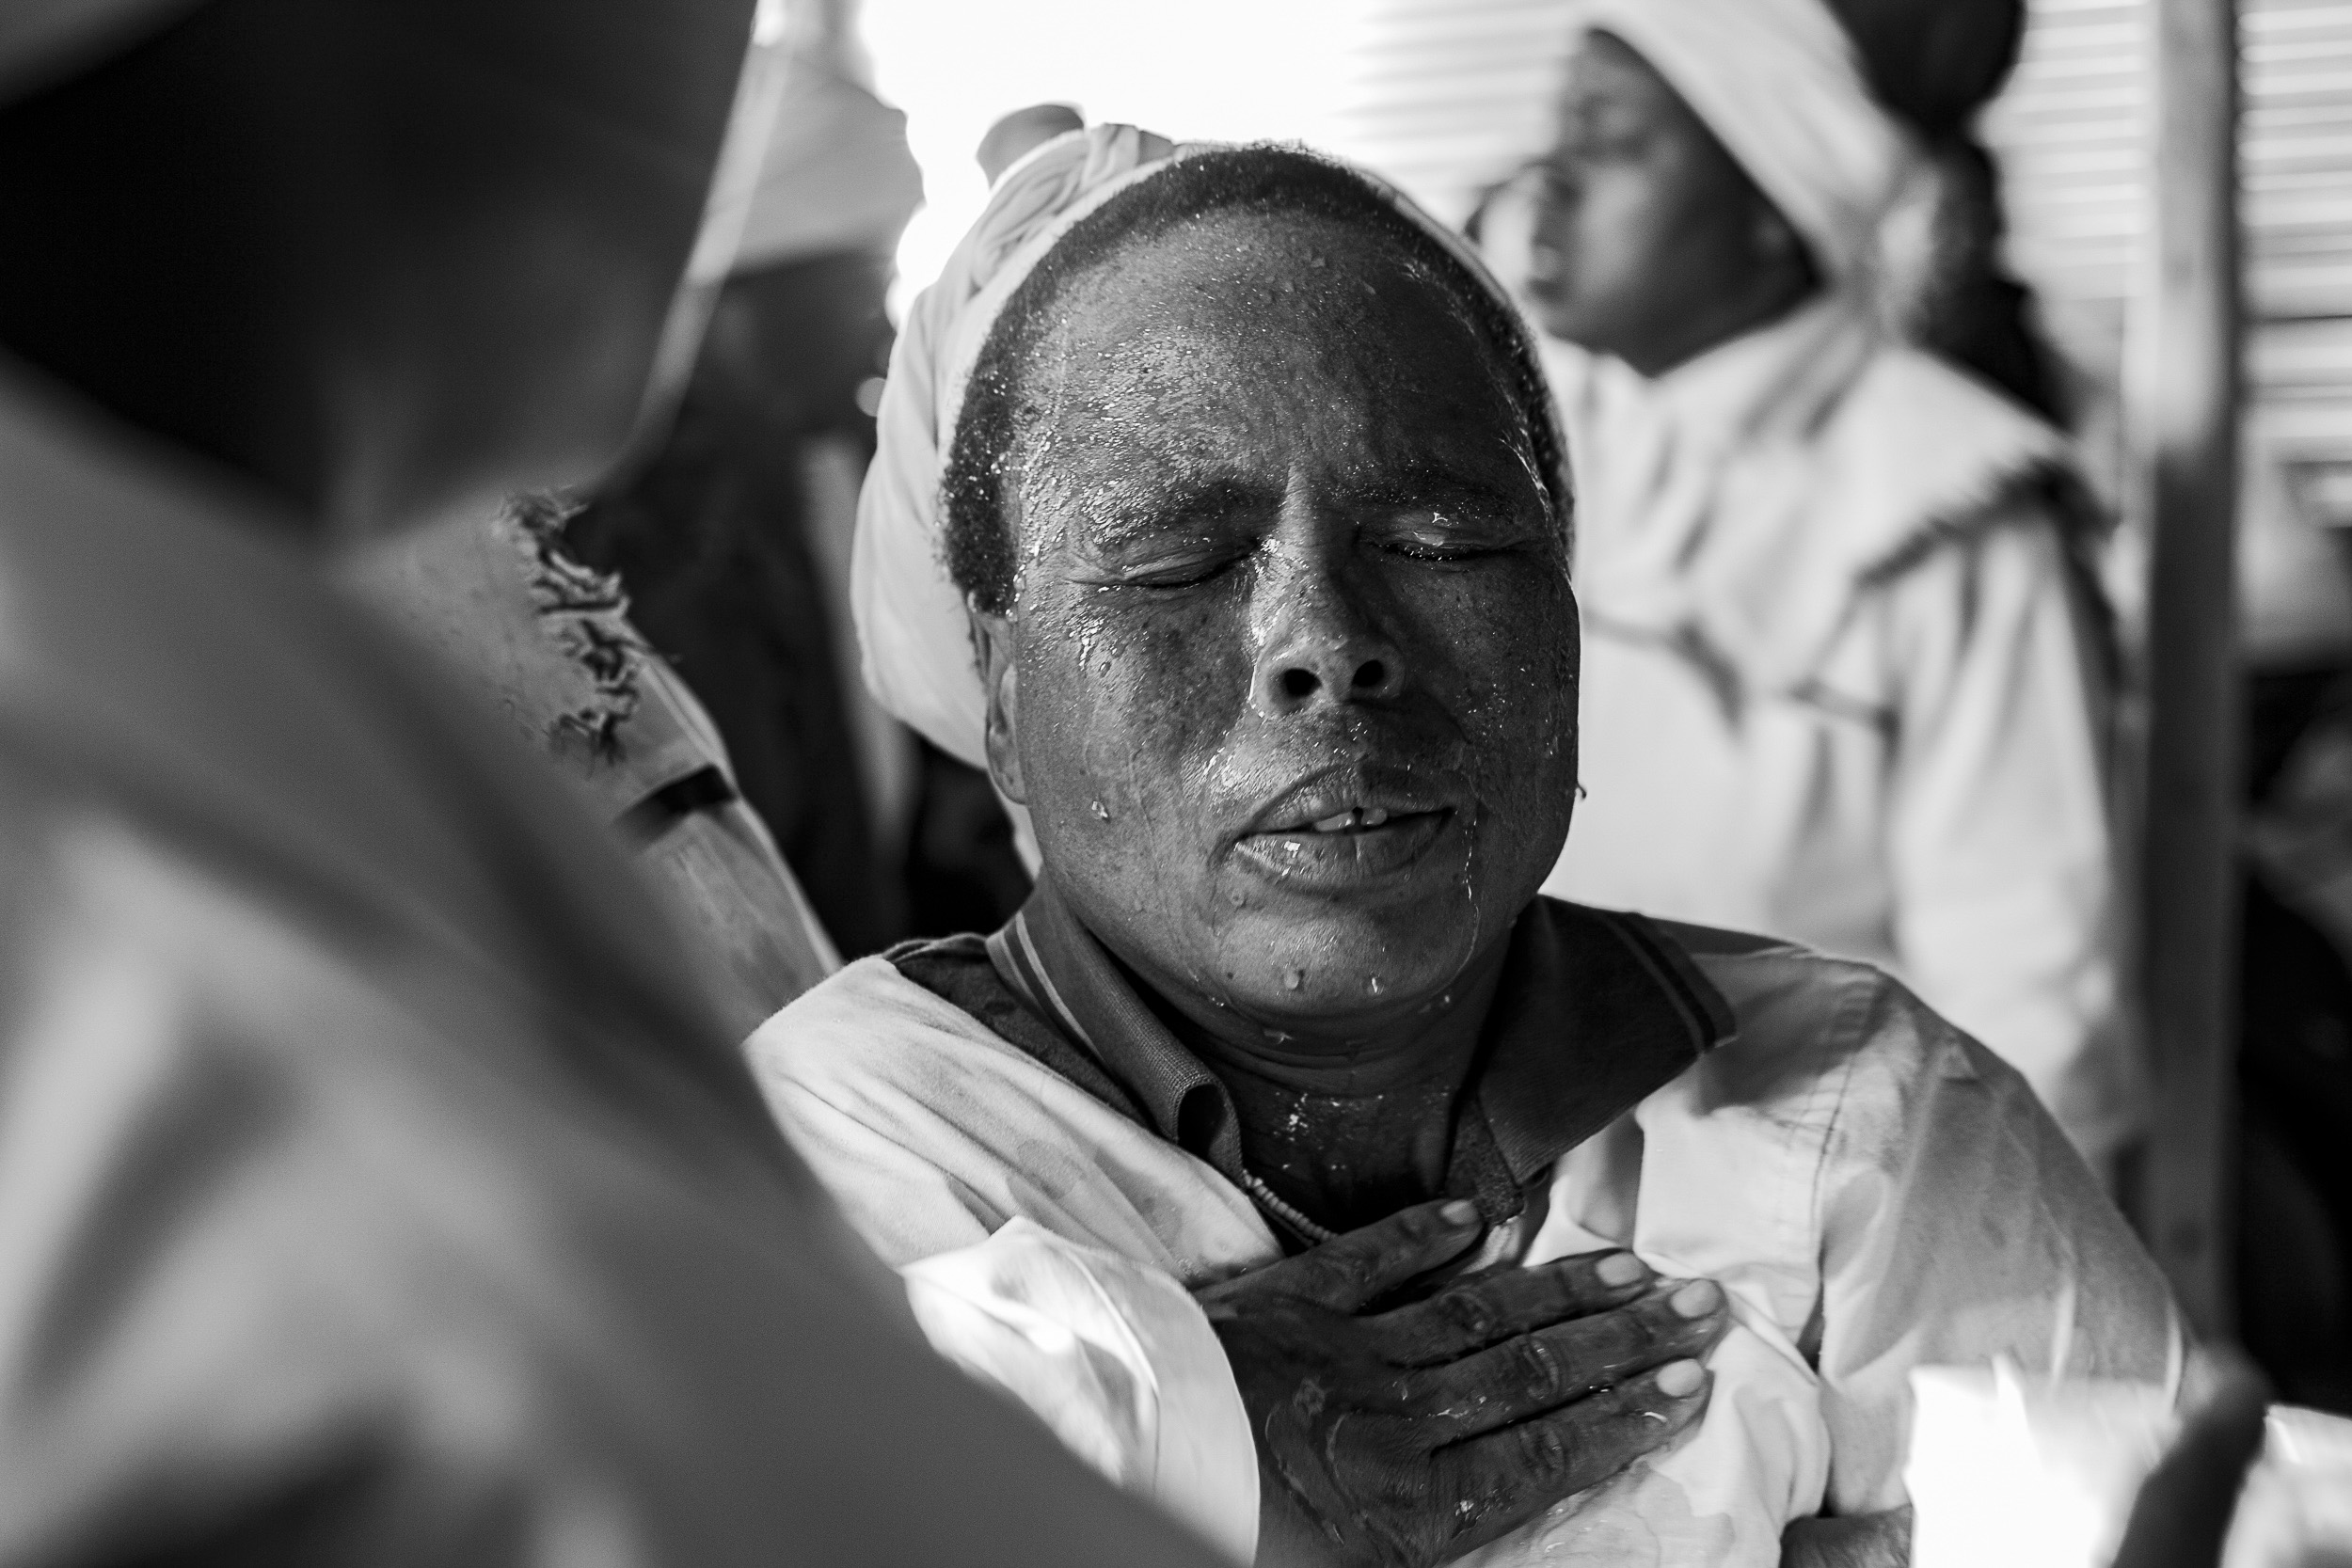 Undated: Ababekhwe Izandla II – Church members pray for a woman at Ukuphila KwamaKrestu church. Water and prayer ease pain after congregants have been in a trance-like state.